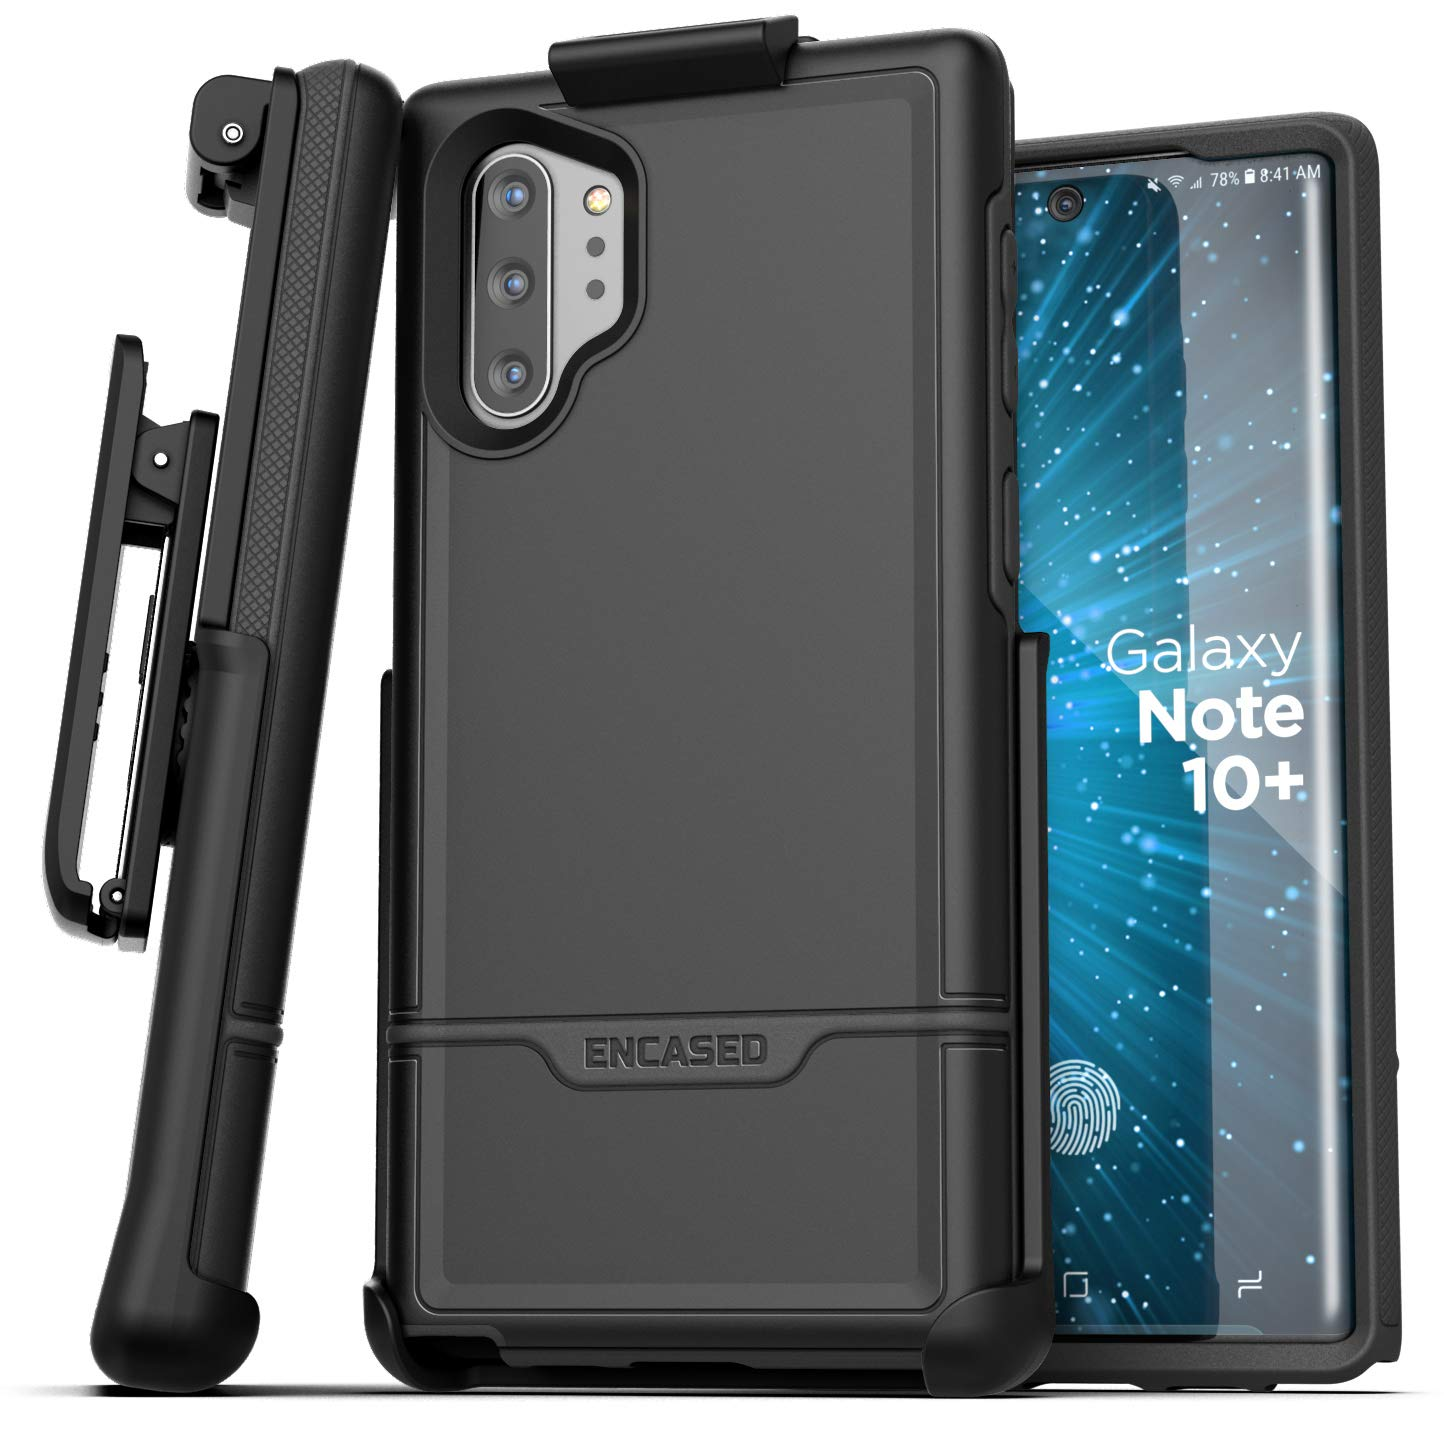 Encased Galaxy Note 10 Plus Belt Clip Protective Holster Case (2019 Rebel Armor) Heavy Duty Rugged Full Body Cover w/Holder for Samsung Note 10+ (Black) by Encased